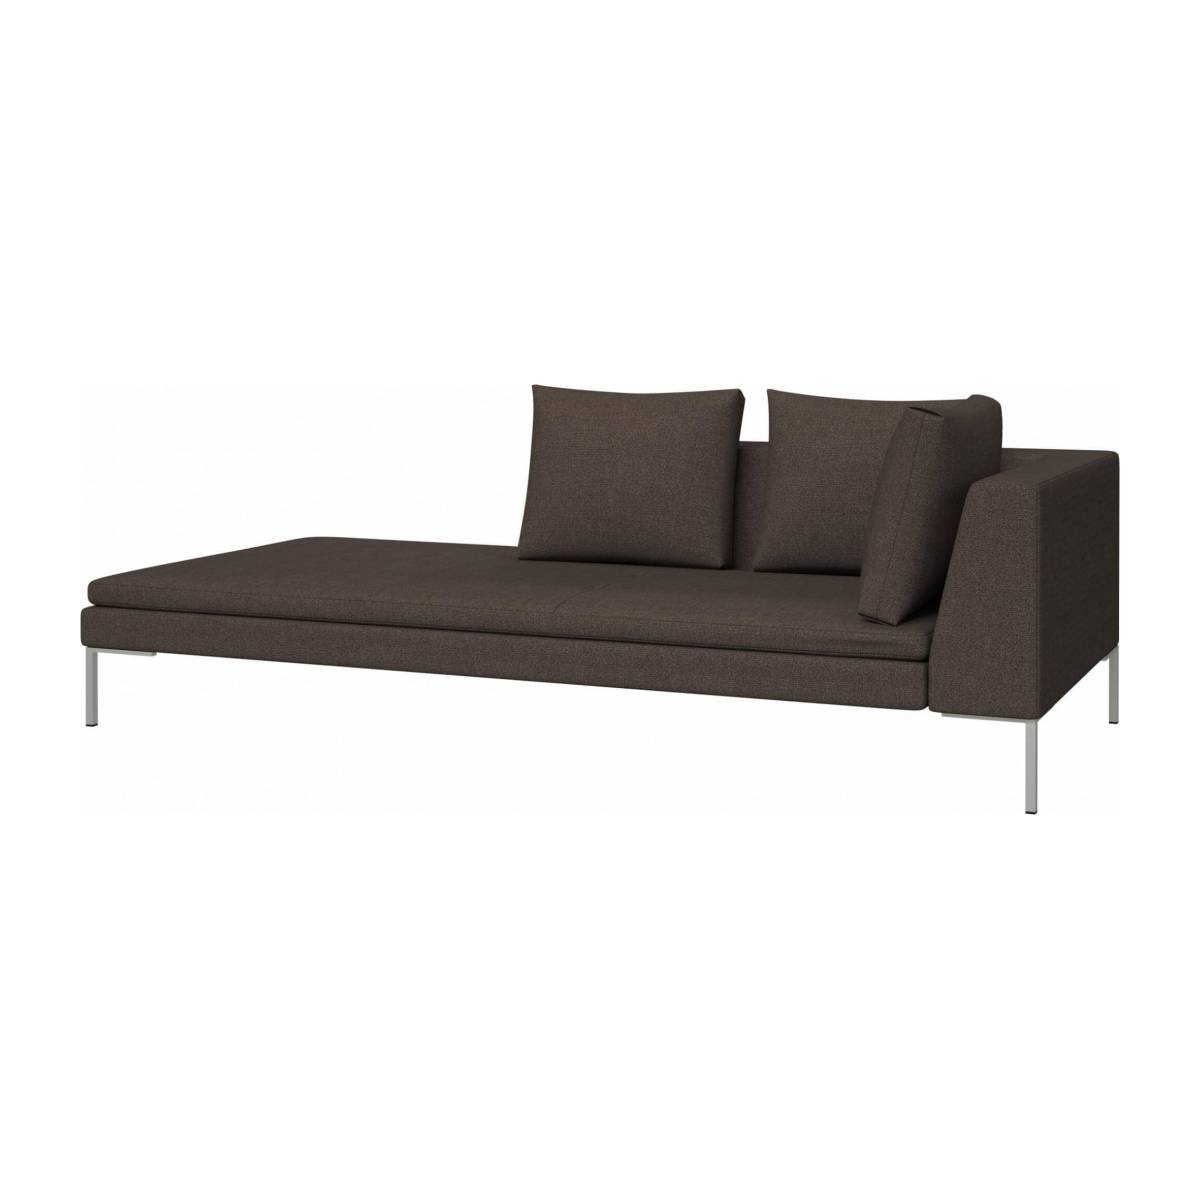 Left chaise longue in Lecce fabric, muscat n°2